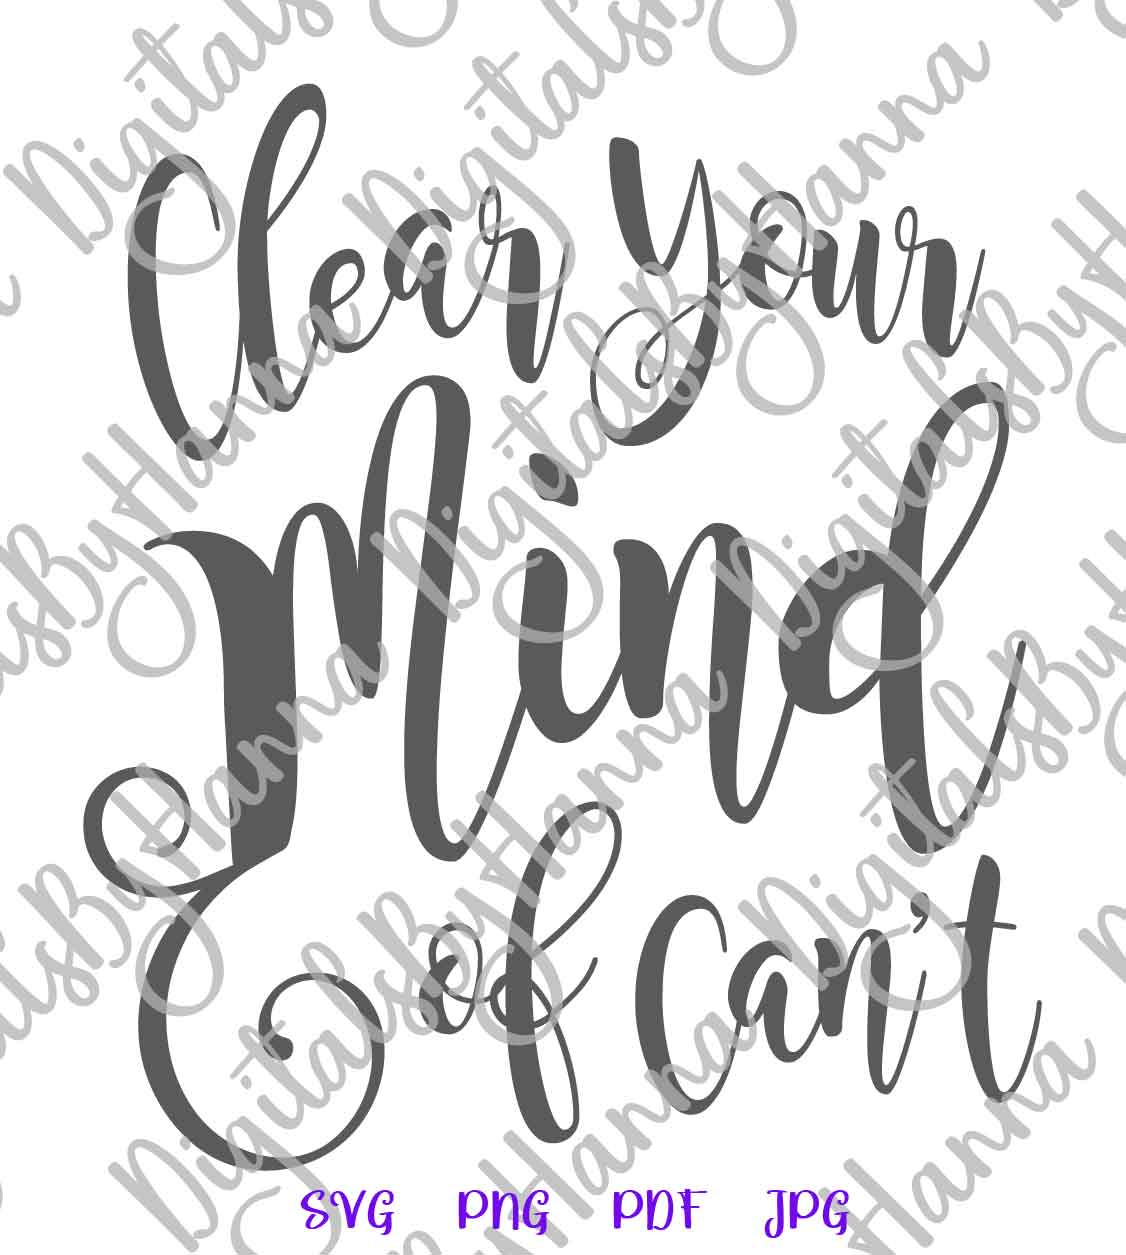 Clear Your Mind of Can't Inspirational Cut File SVG DXF PNG example image 5